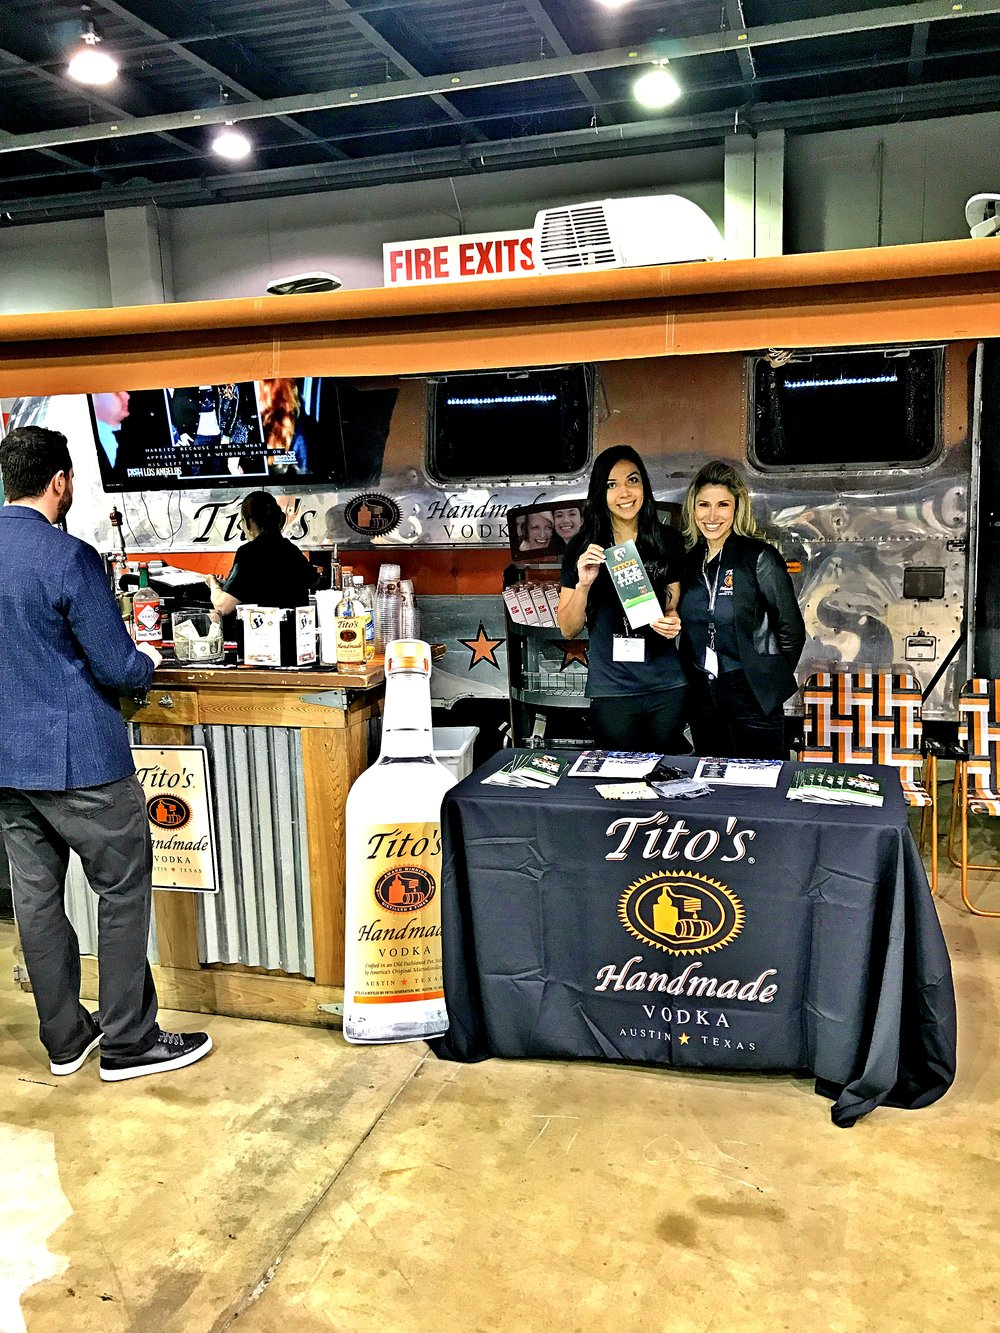 Tito's Handmade Vodka brought the Happy Hour!